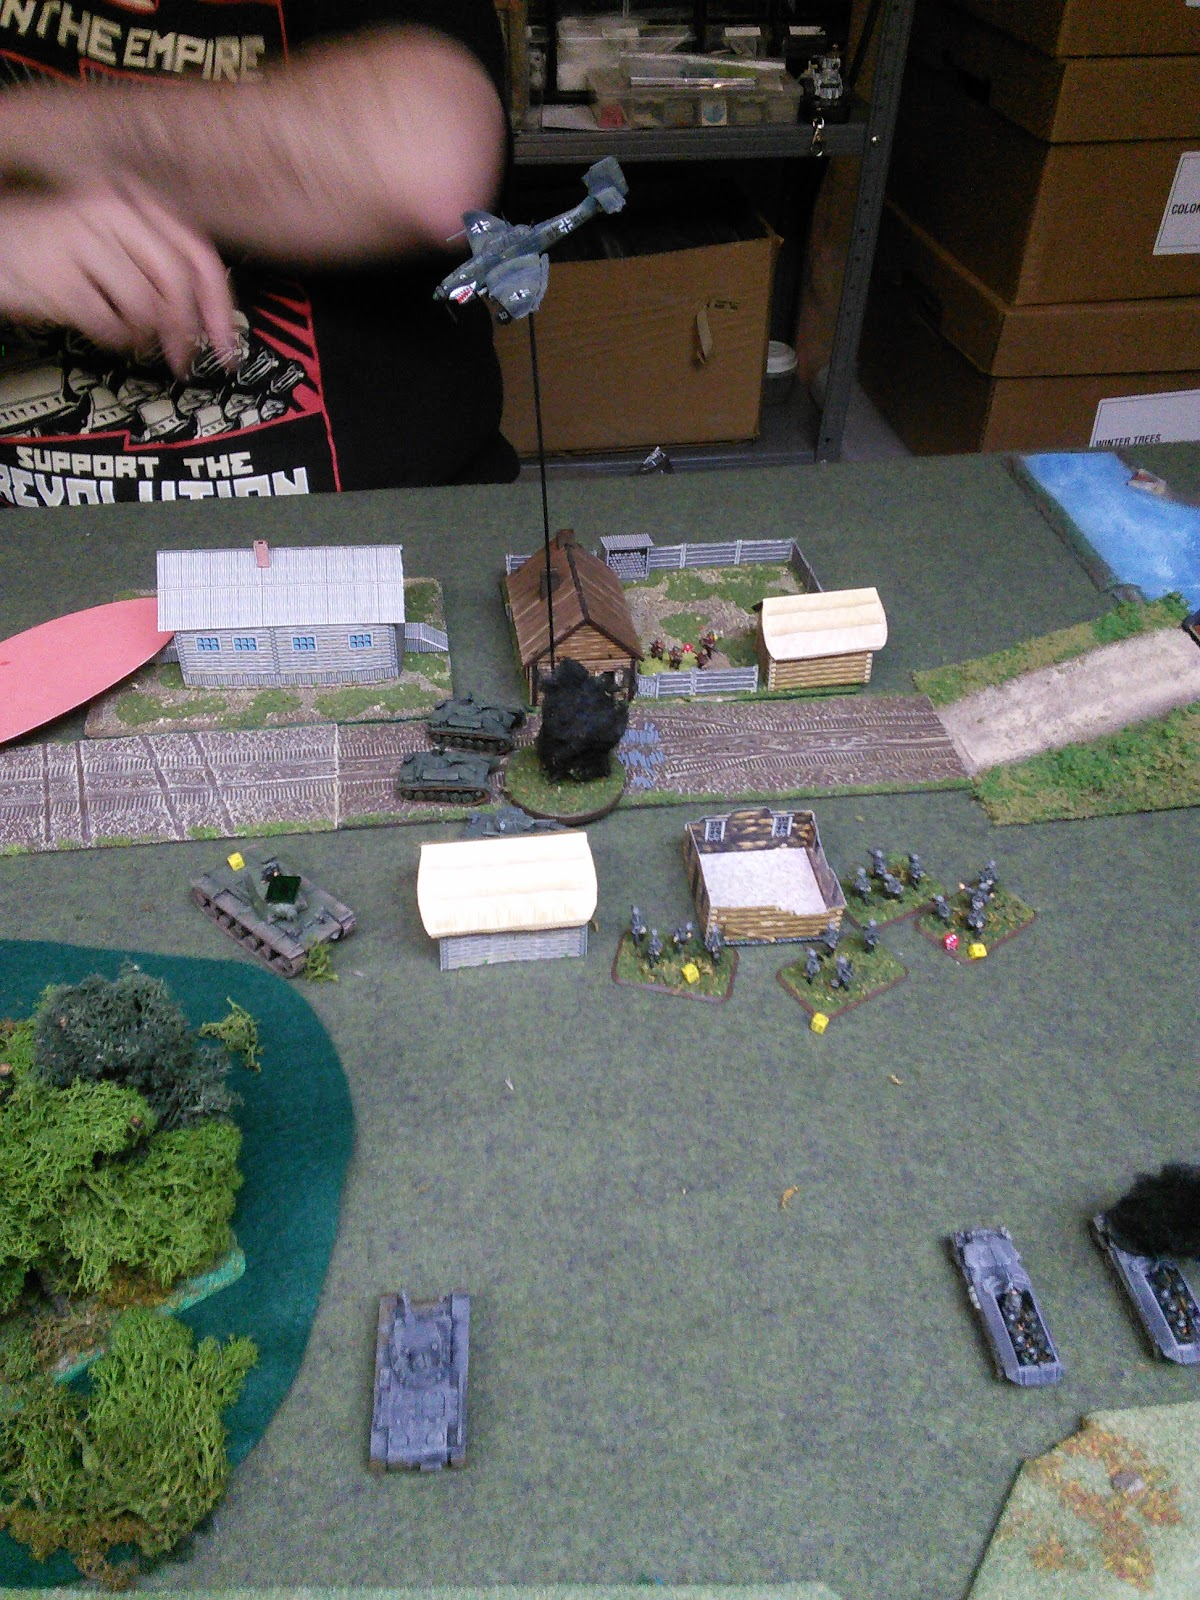 stuka doing a little better going after the t-26s